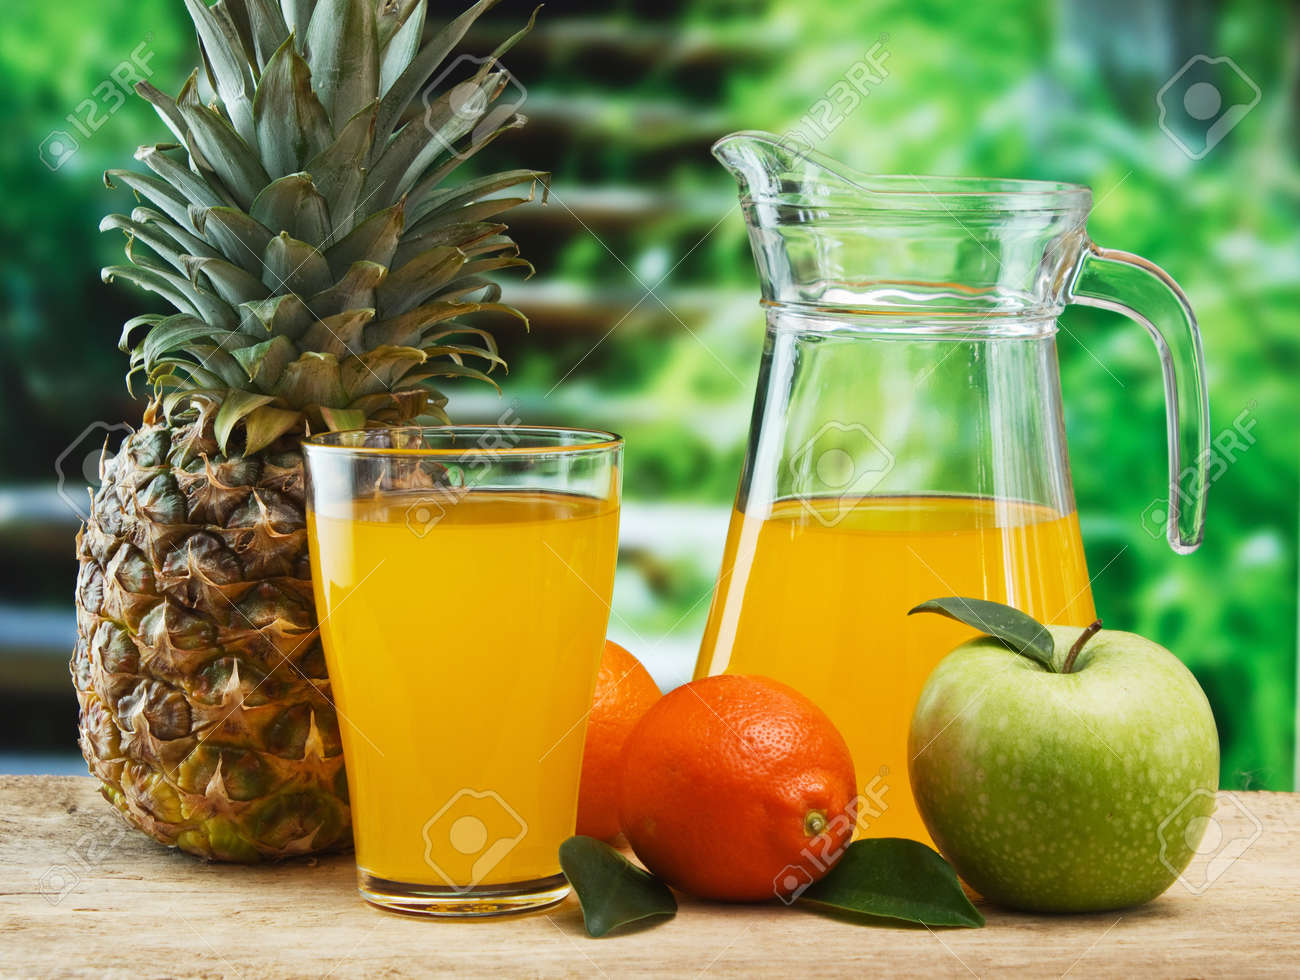 variety of fruit and juice on a wooden table in the garden - 18939852